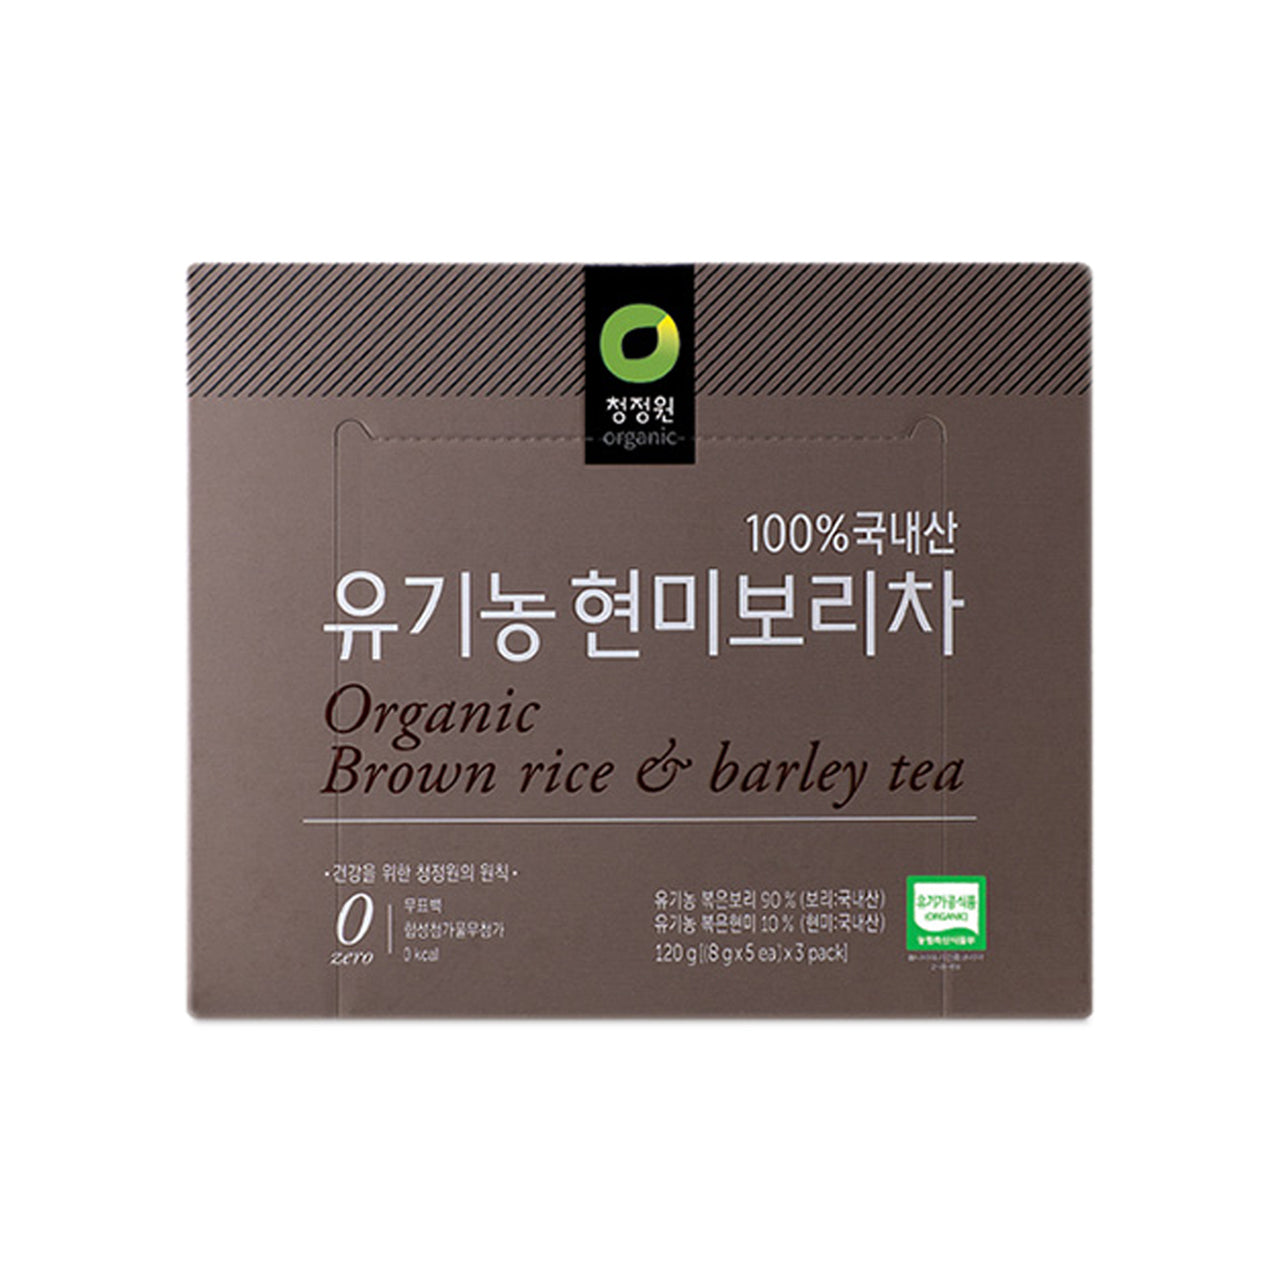 청정원 유기농 현미보리차 (Chungjungone Organic Brown Rice & Barley Tea) 120g